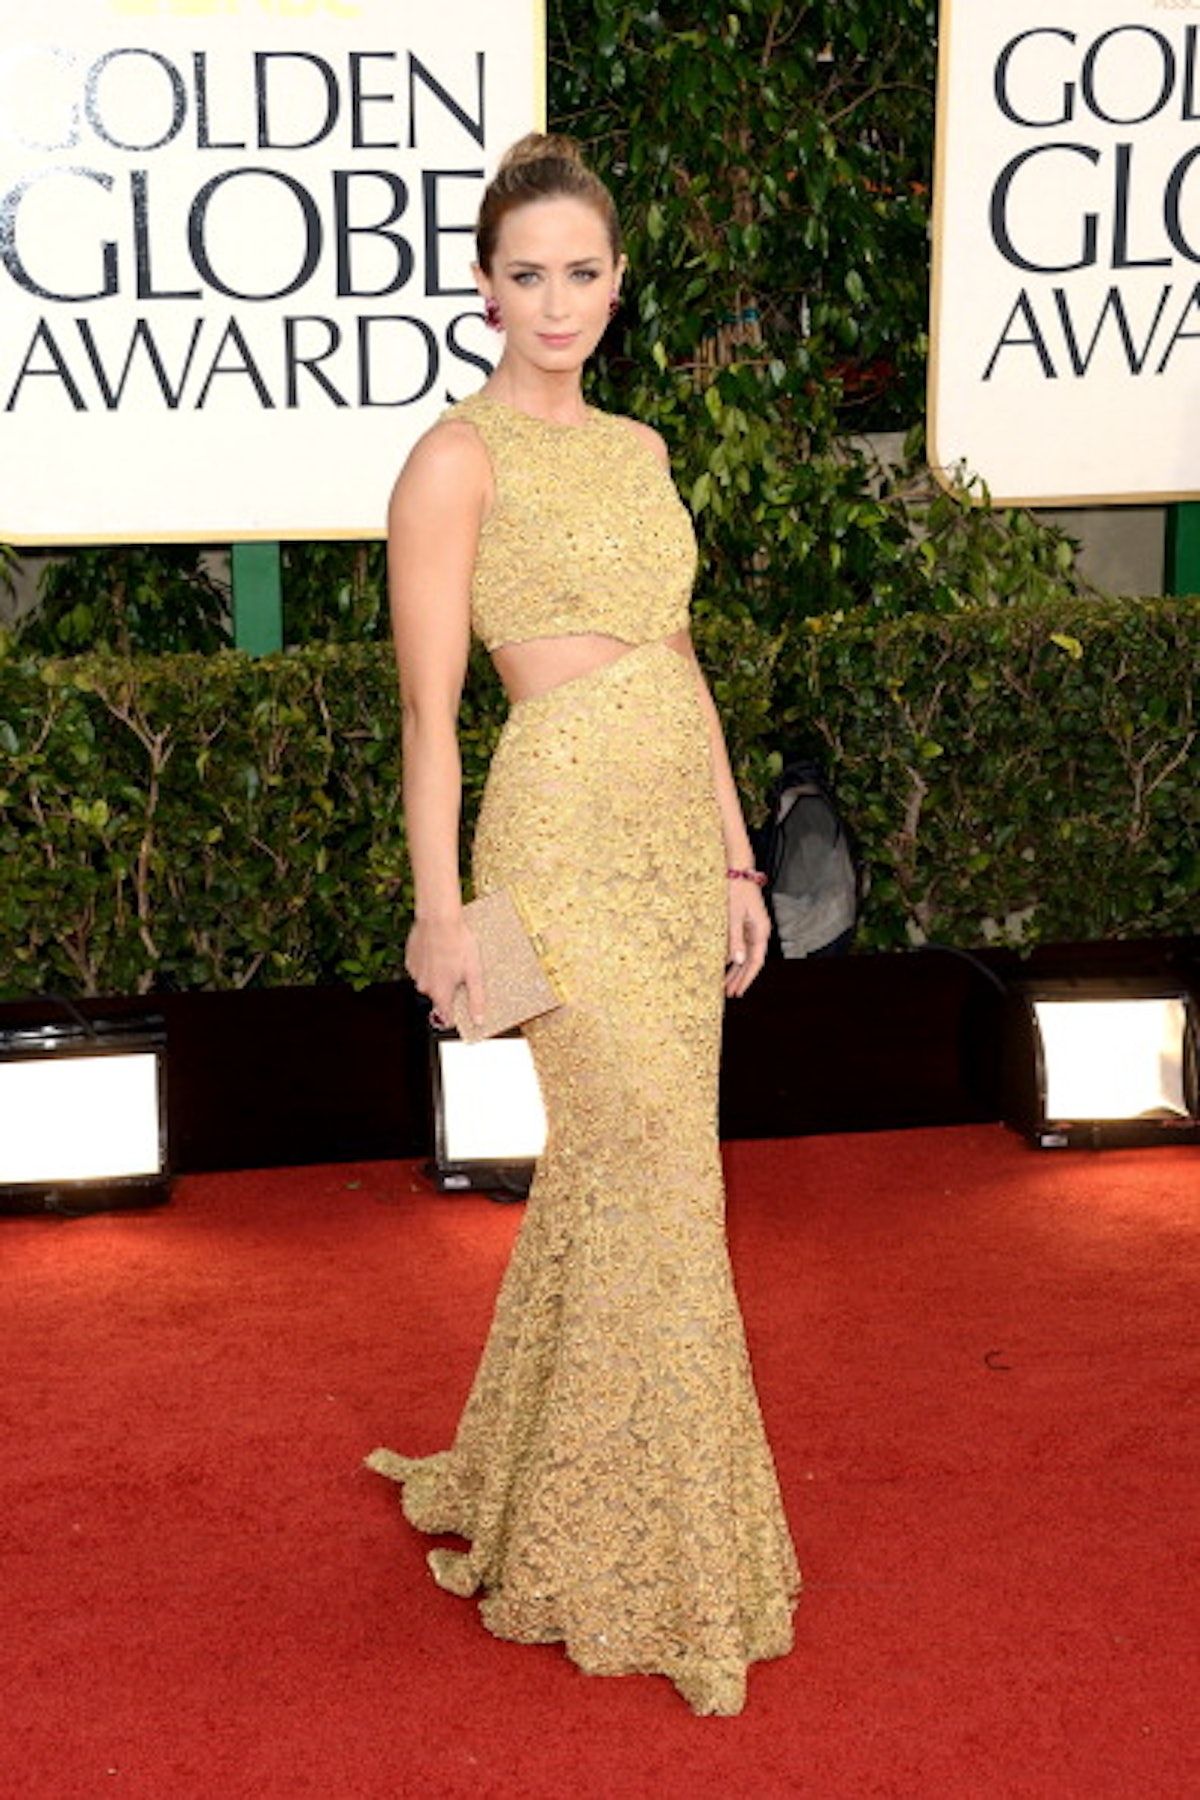 Emily Blunt in a gold dress.